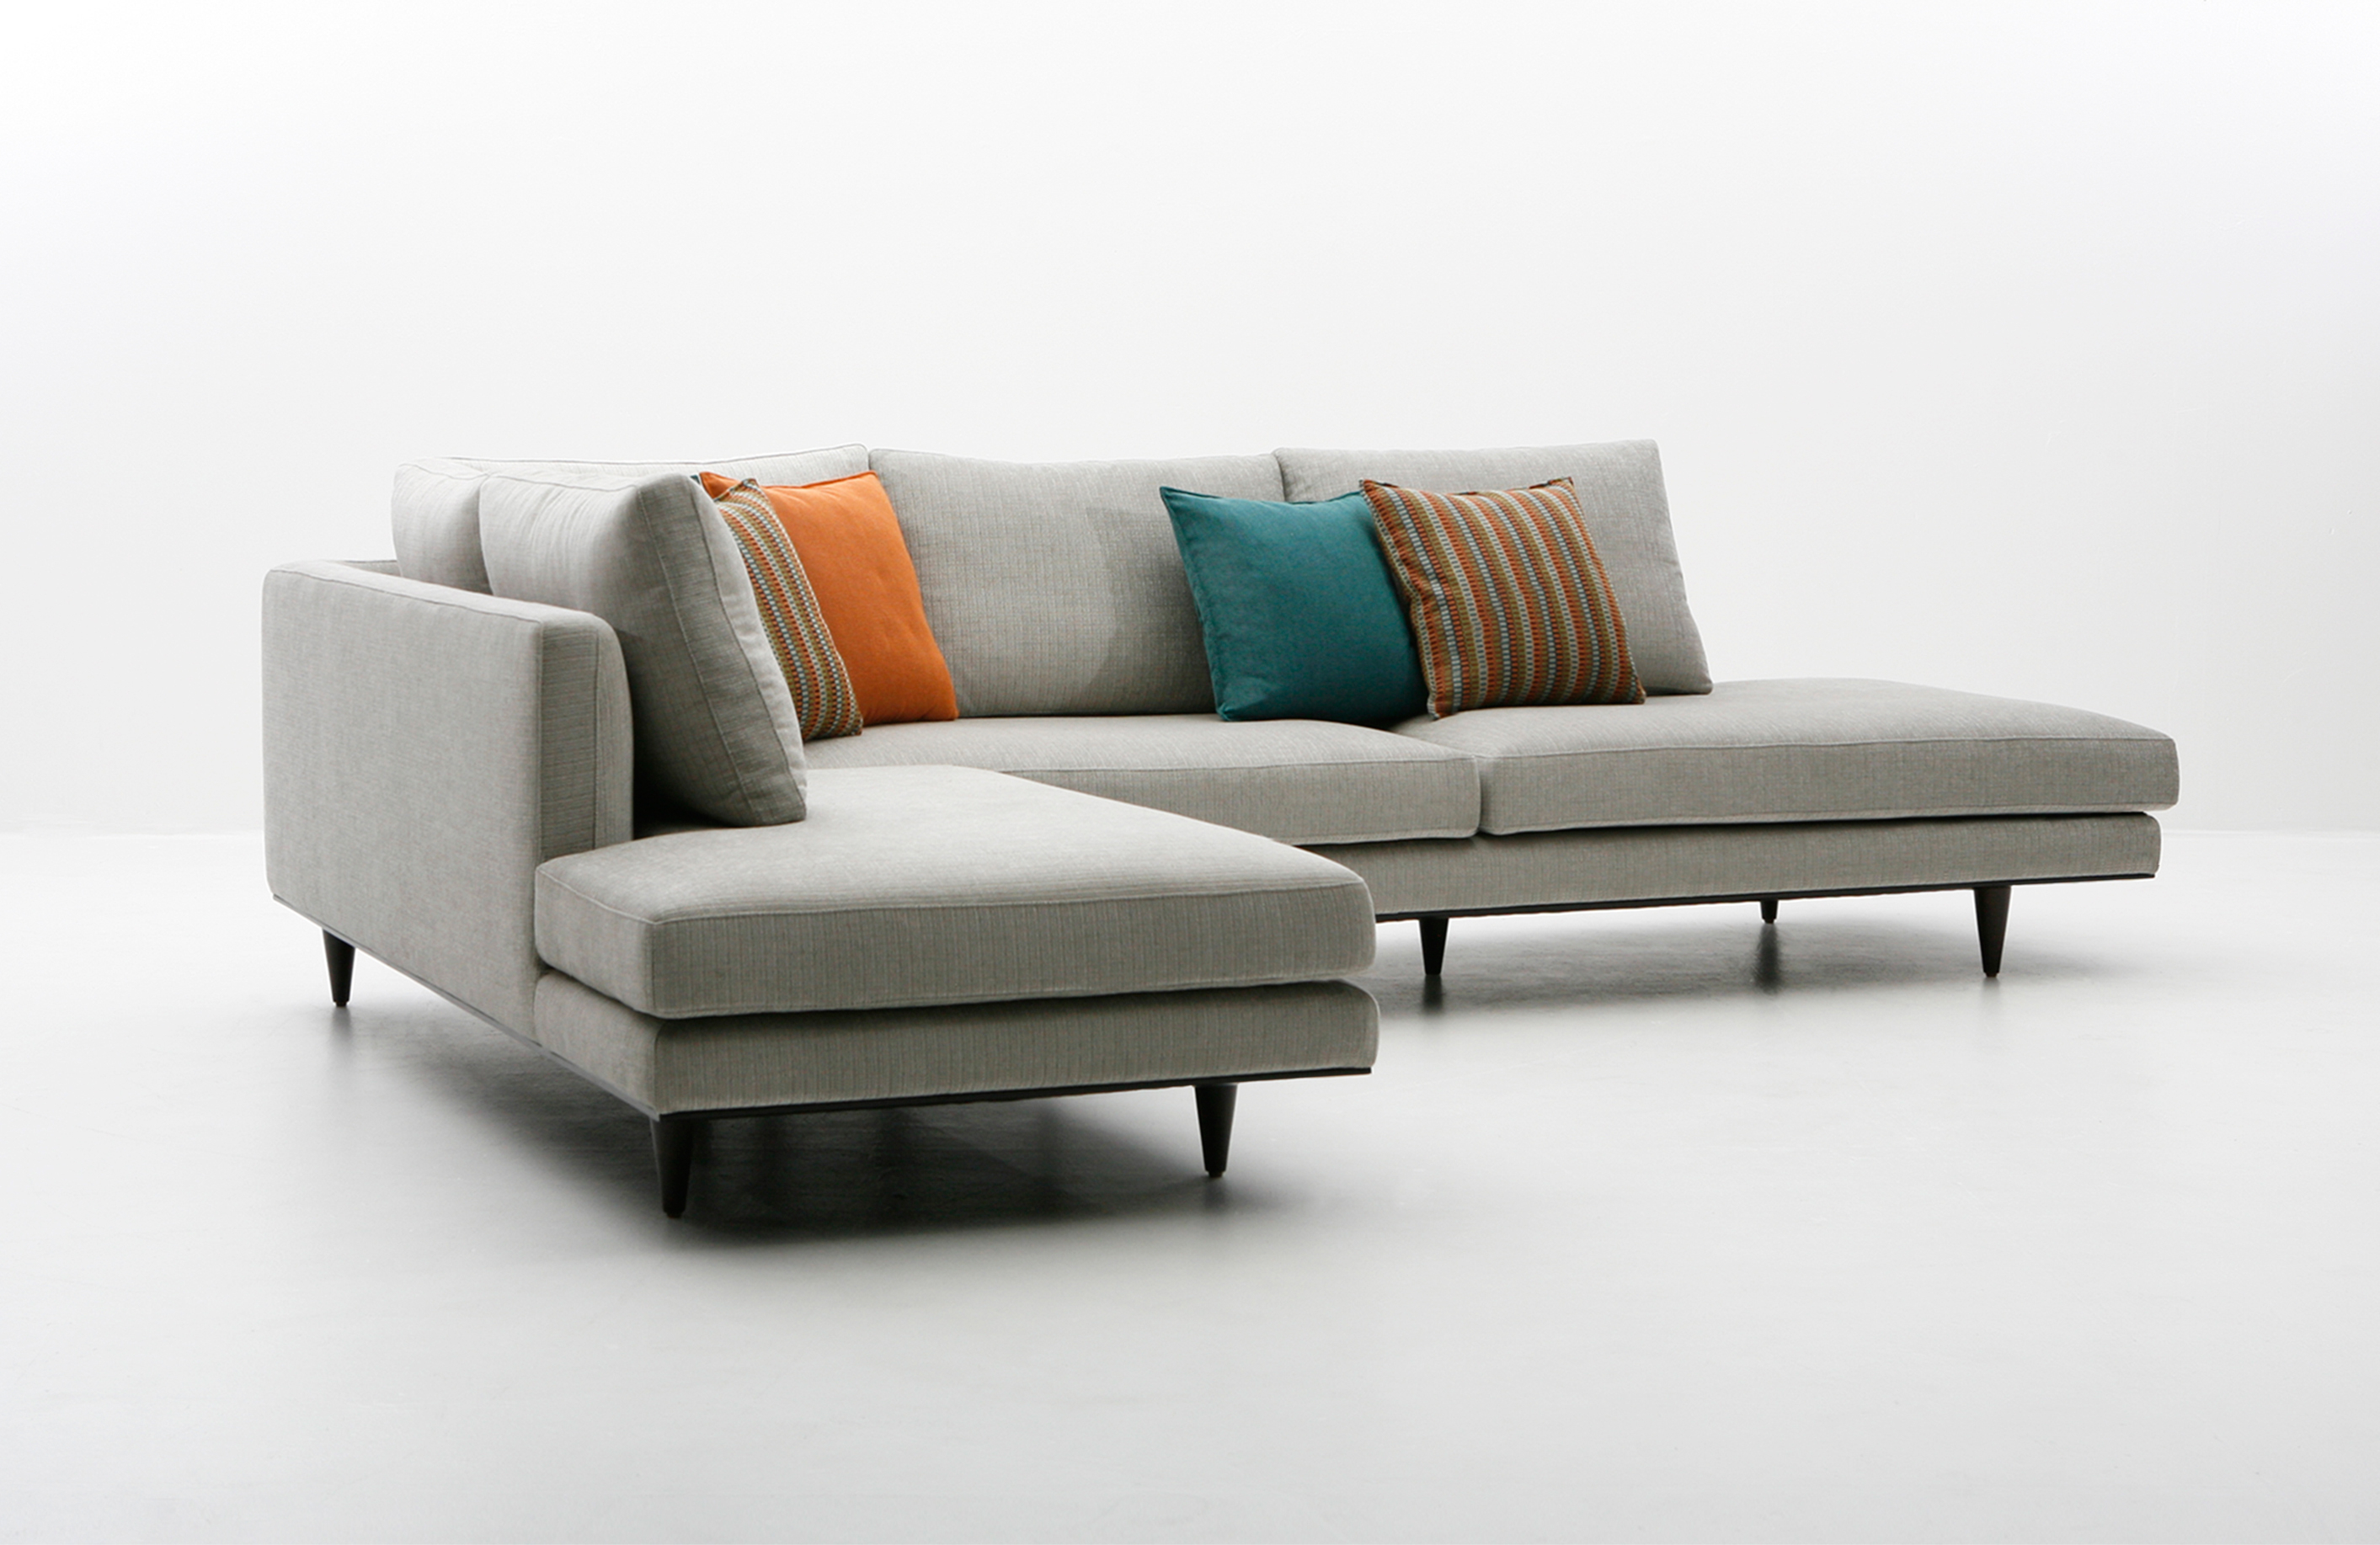 Dellarobbia Milo Sofa, Chair And Sectional | Living Room | Sklar intended for Milo Sofa Chairs